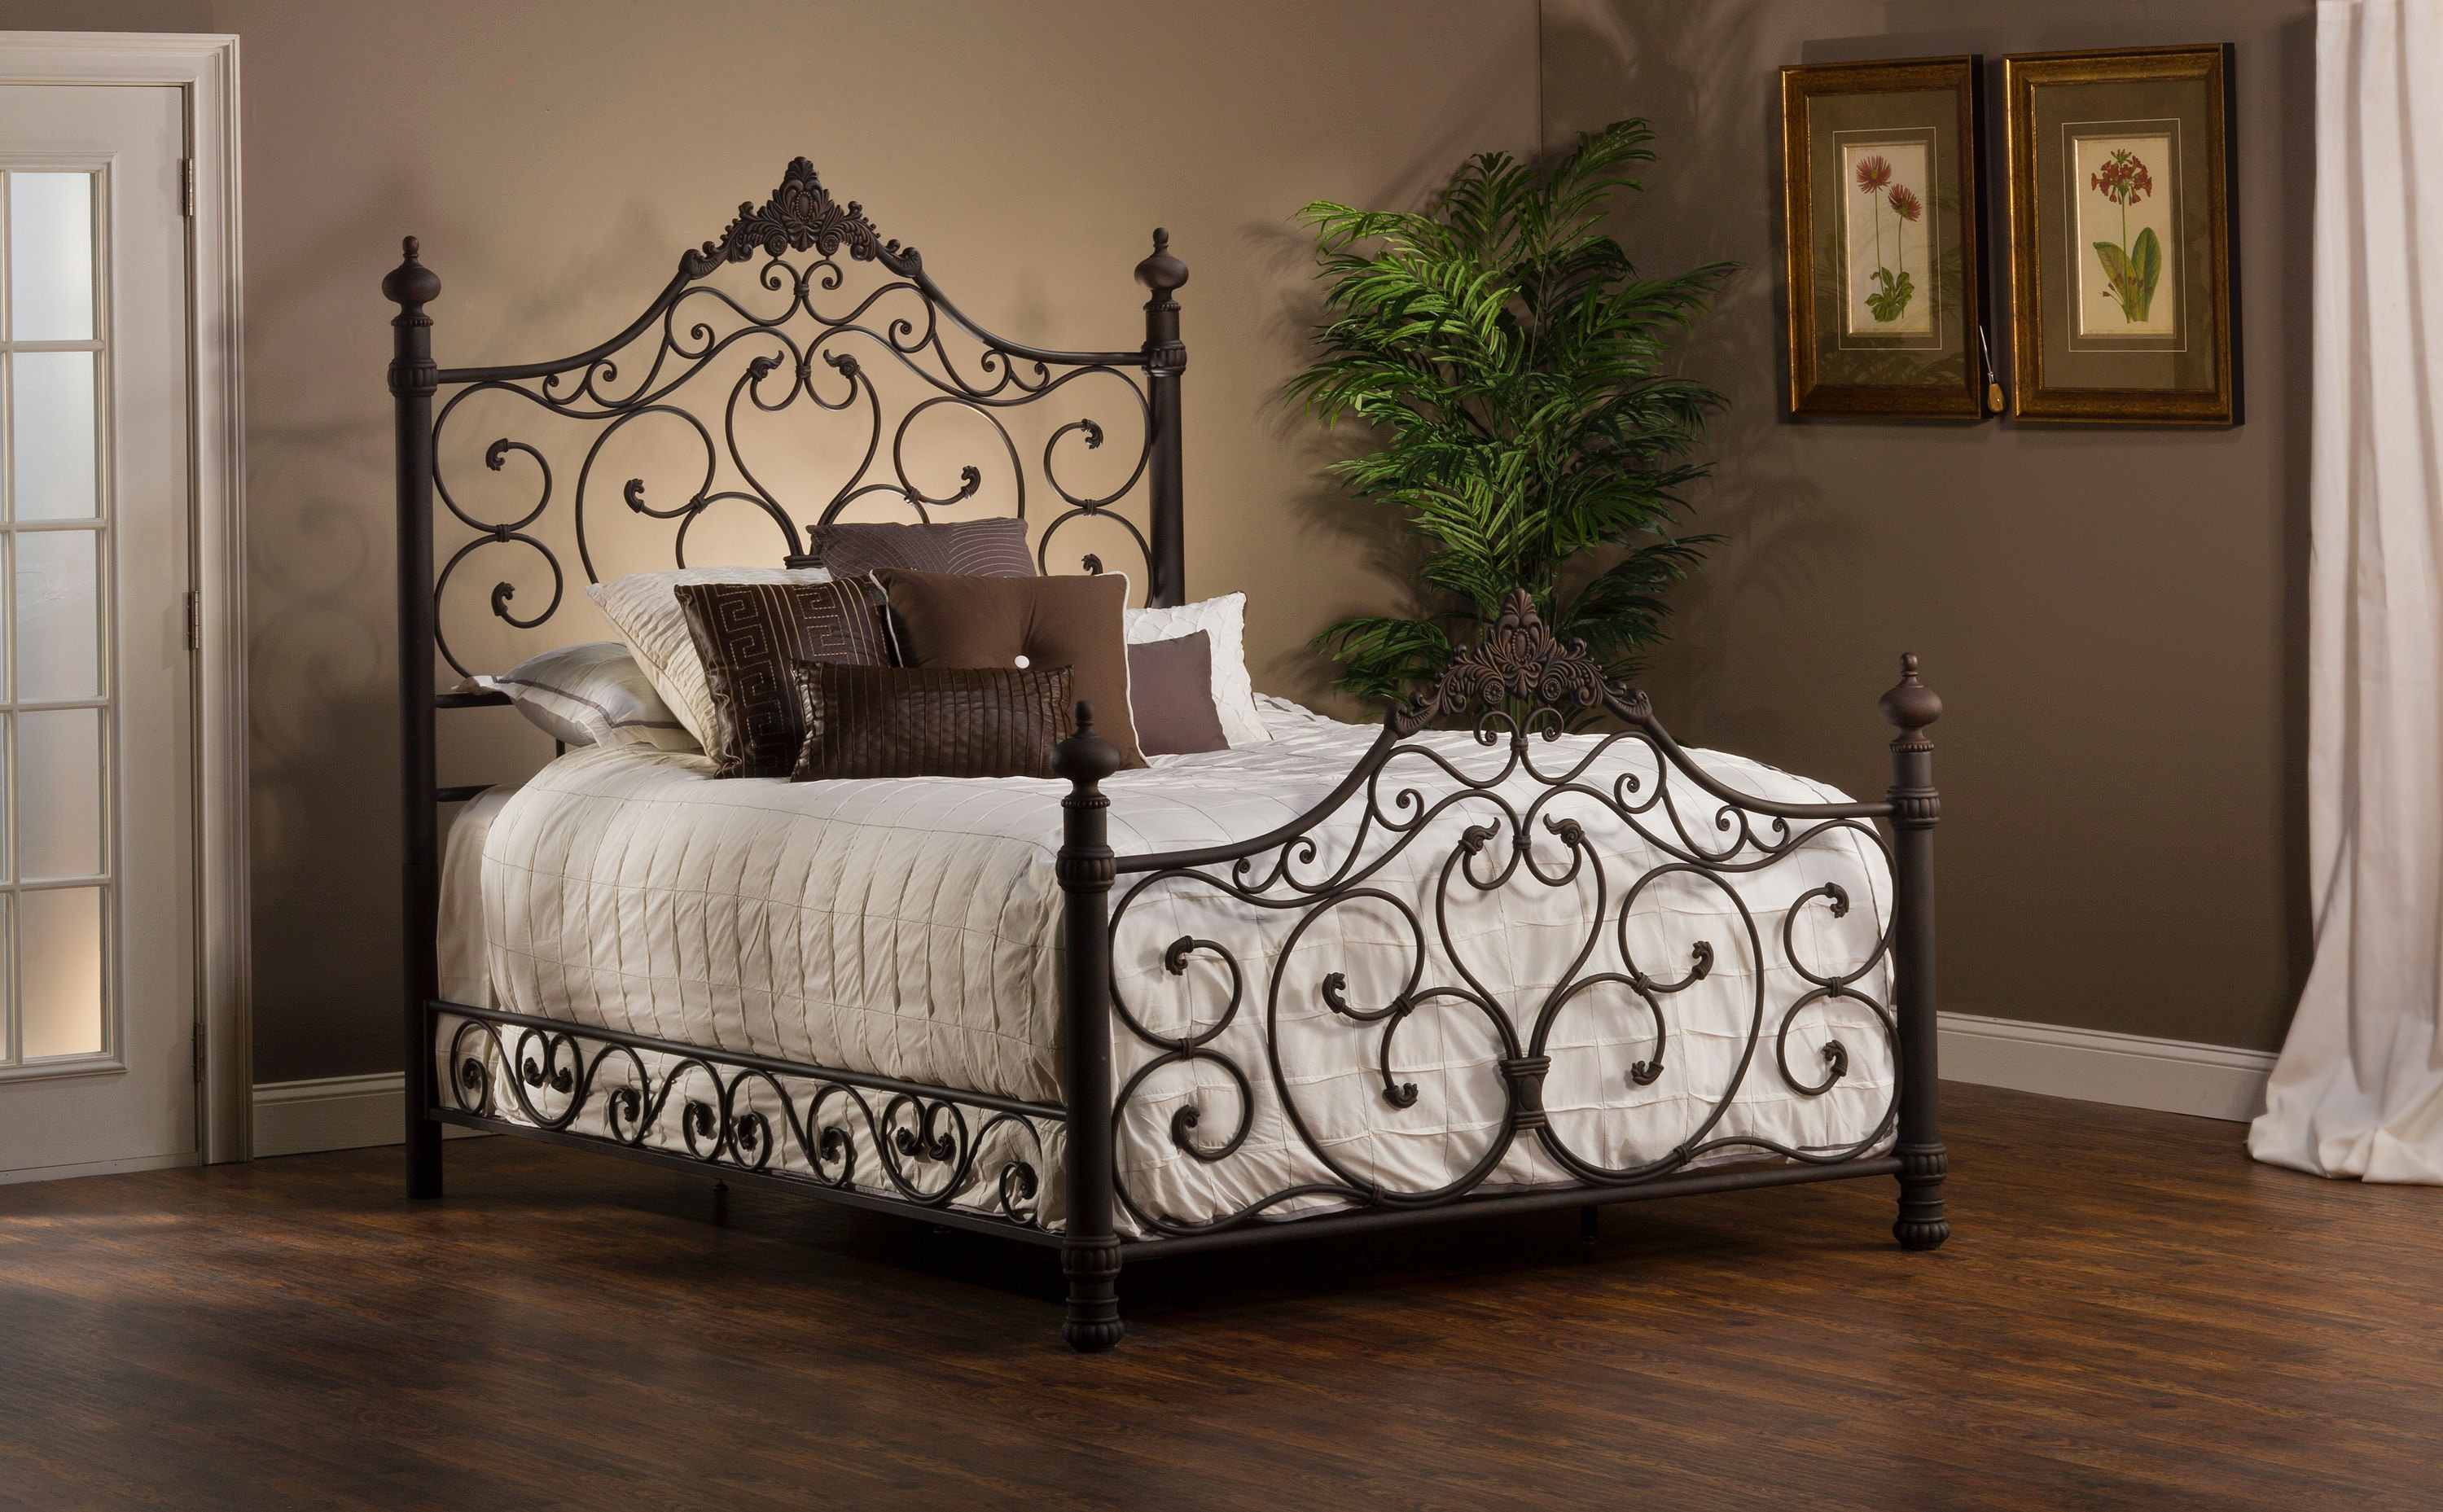 Hillsdale Furniture Baremore Bed Set   Queen 1742 500 Available To Order At  Flemington Department Store